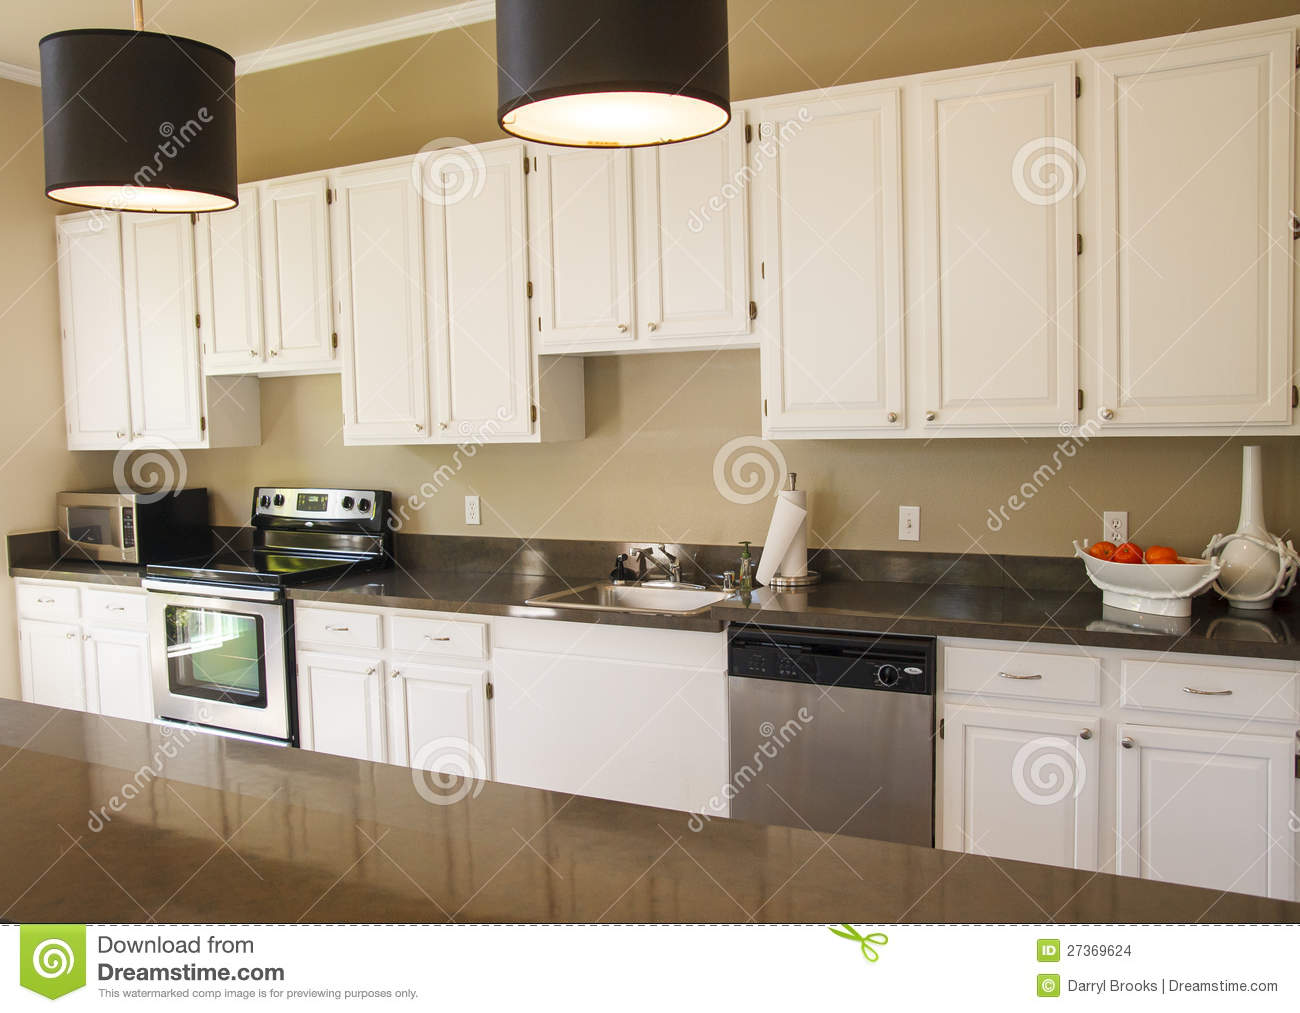 nice white kitchen cabinets kitchen with white cabinets stock images image 23783